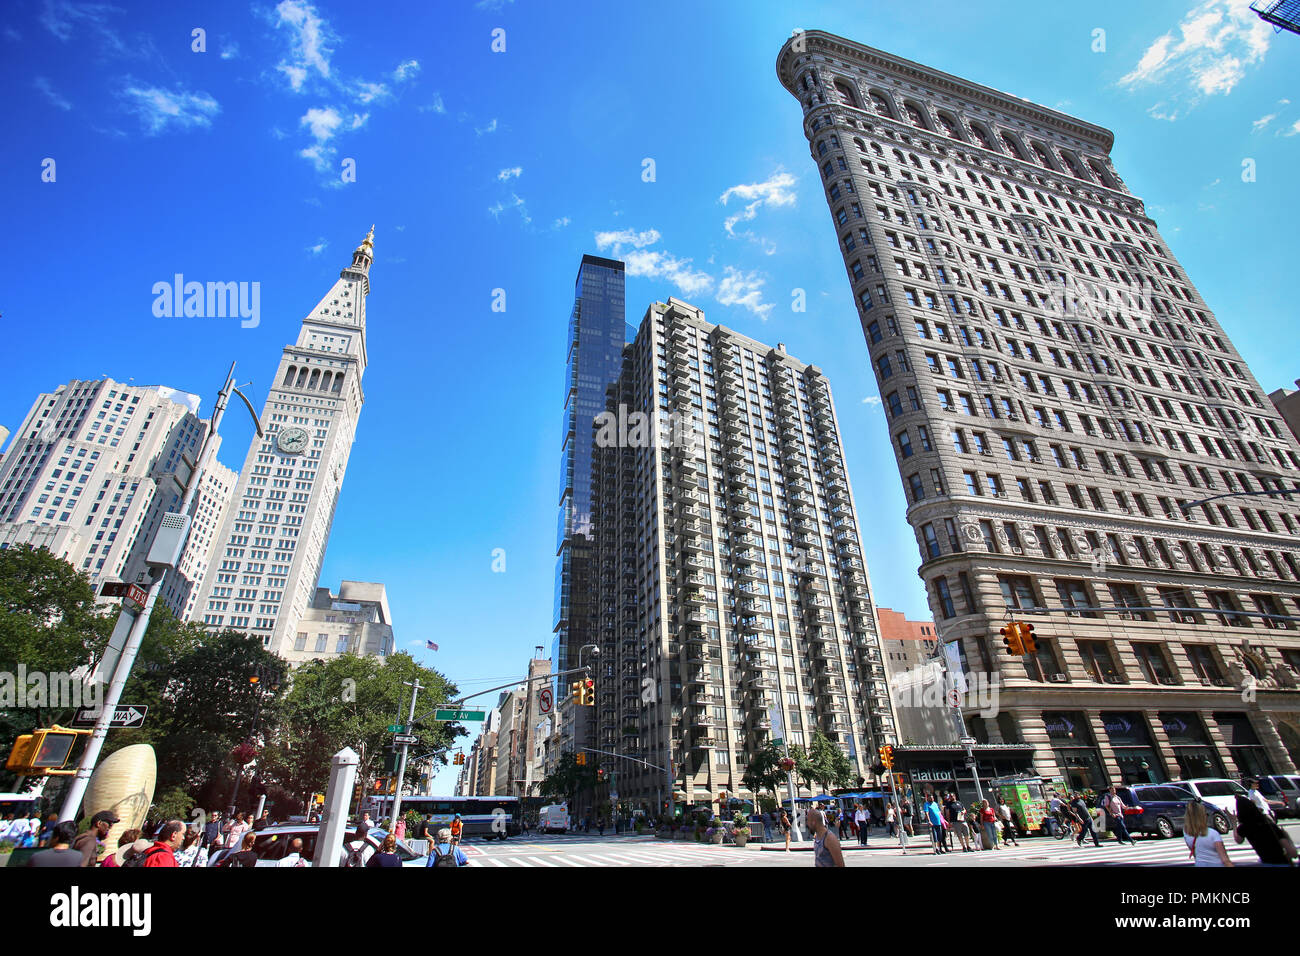 New York, USA – August 23, 2018: Busy sidewalk at the intersection 5th Avenue and E 23rd Street next to Flatiron building with traffic and crowded wit - Stock Image